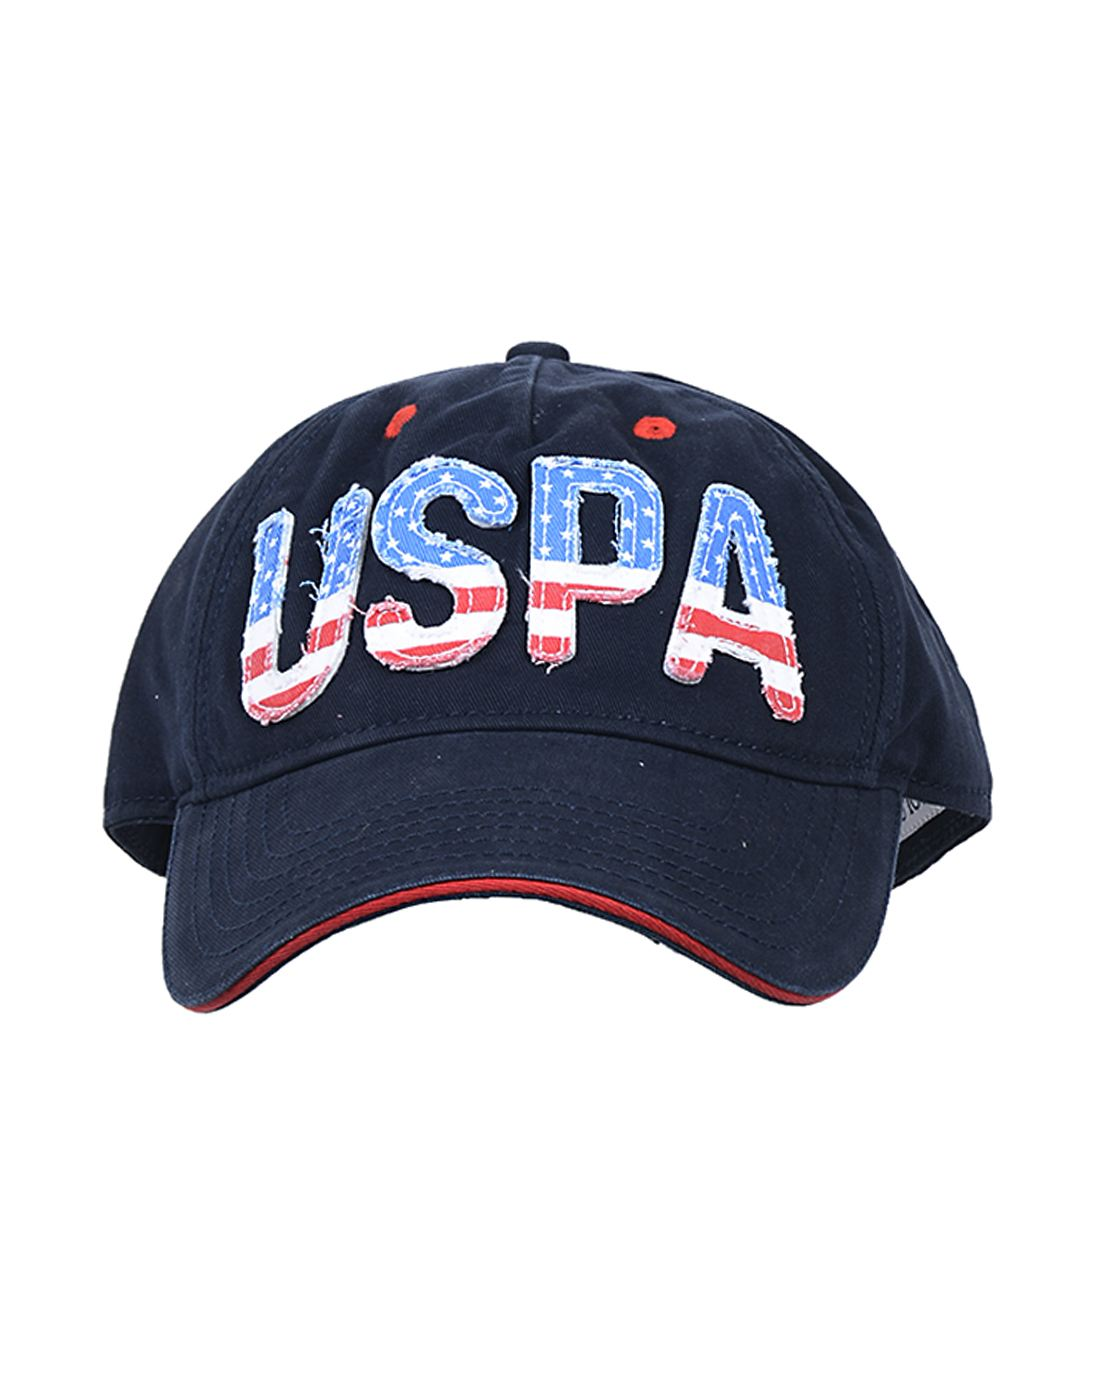 U.S. Polo Assn. Accessories Casual Wear Solid Cap